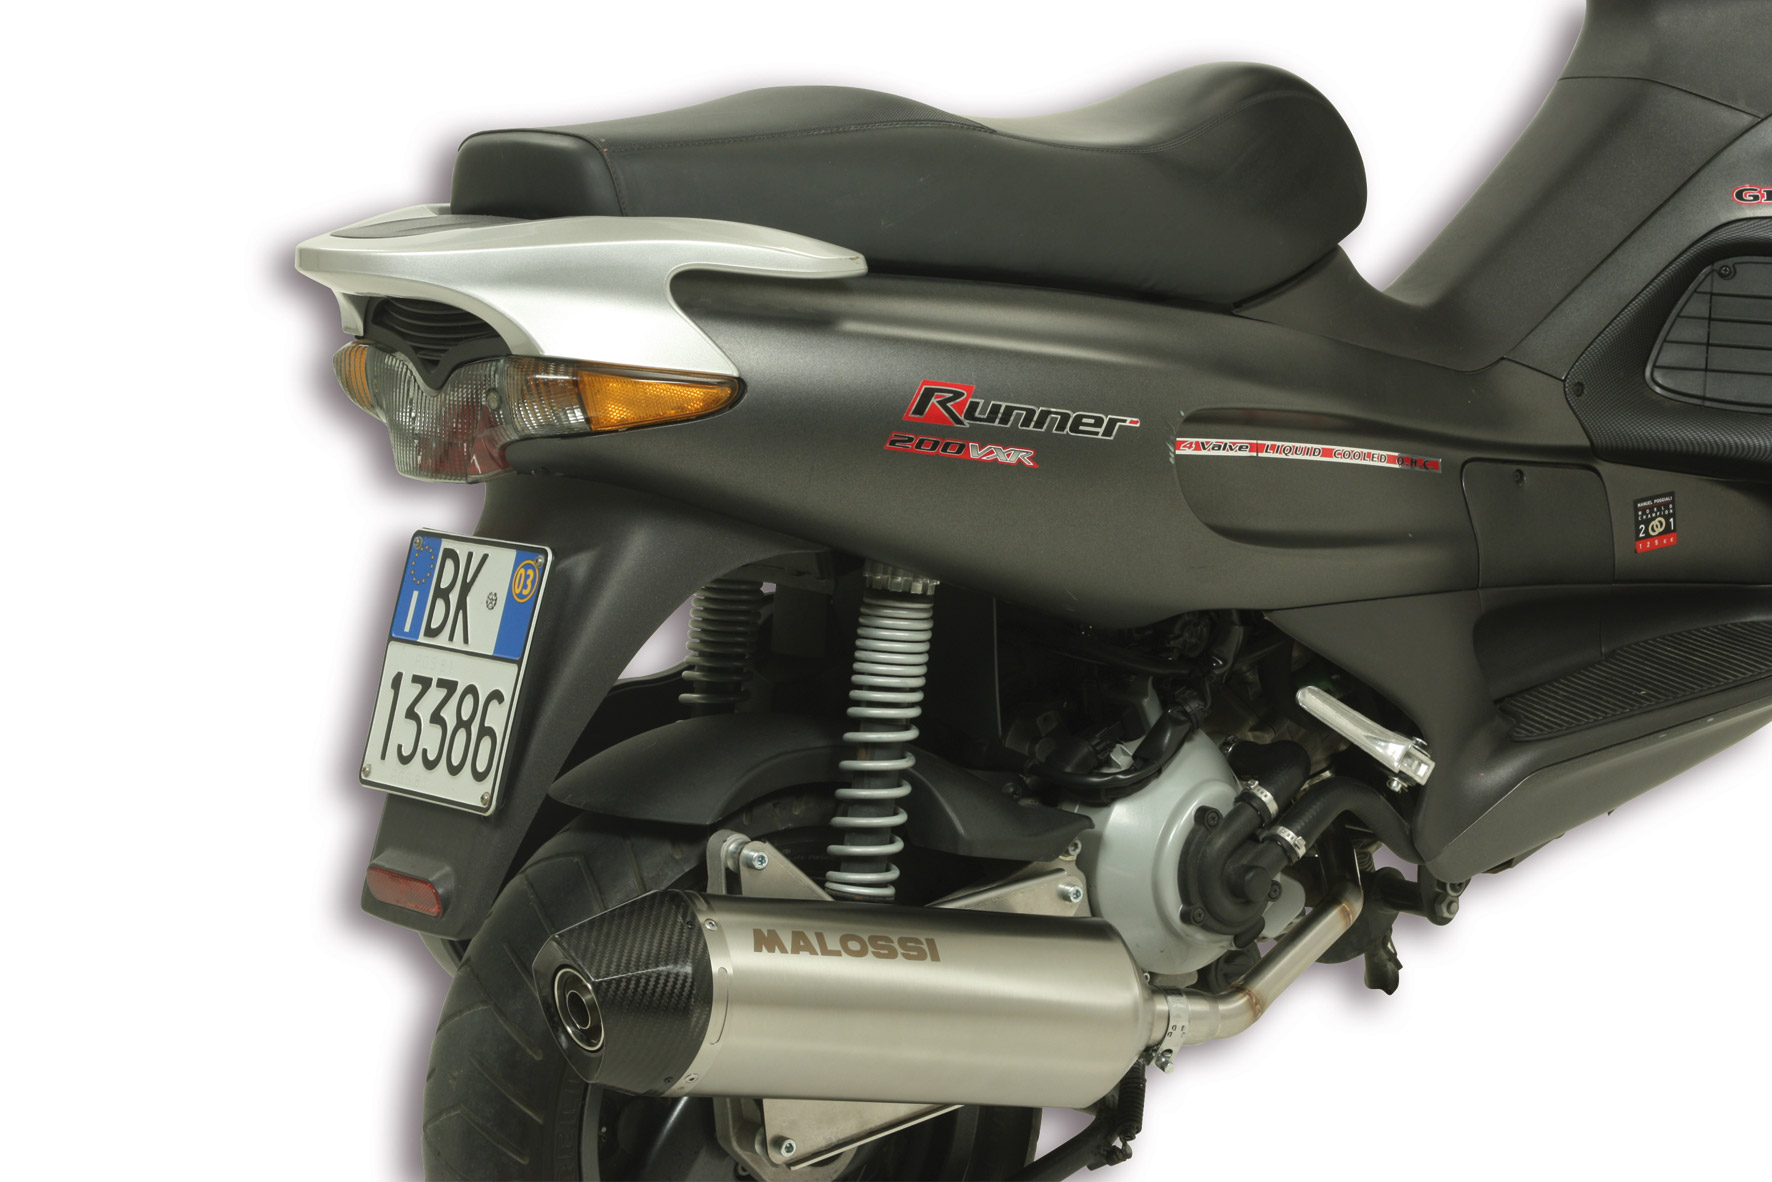 EXHAUST S. RX homologated